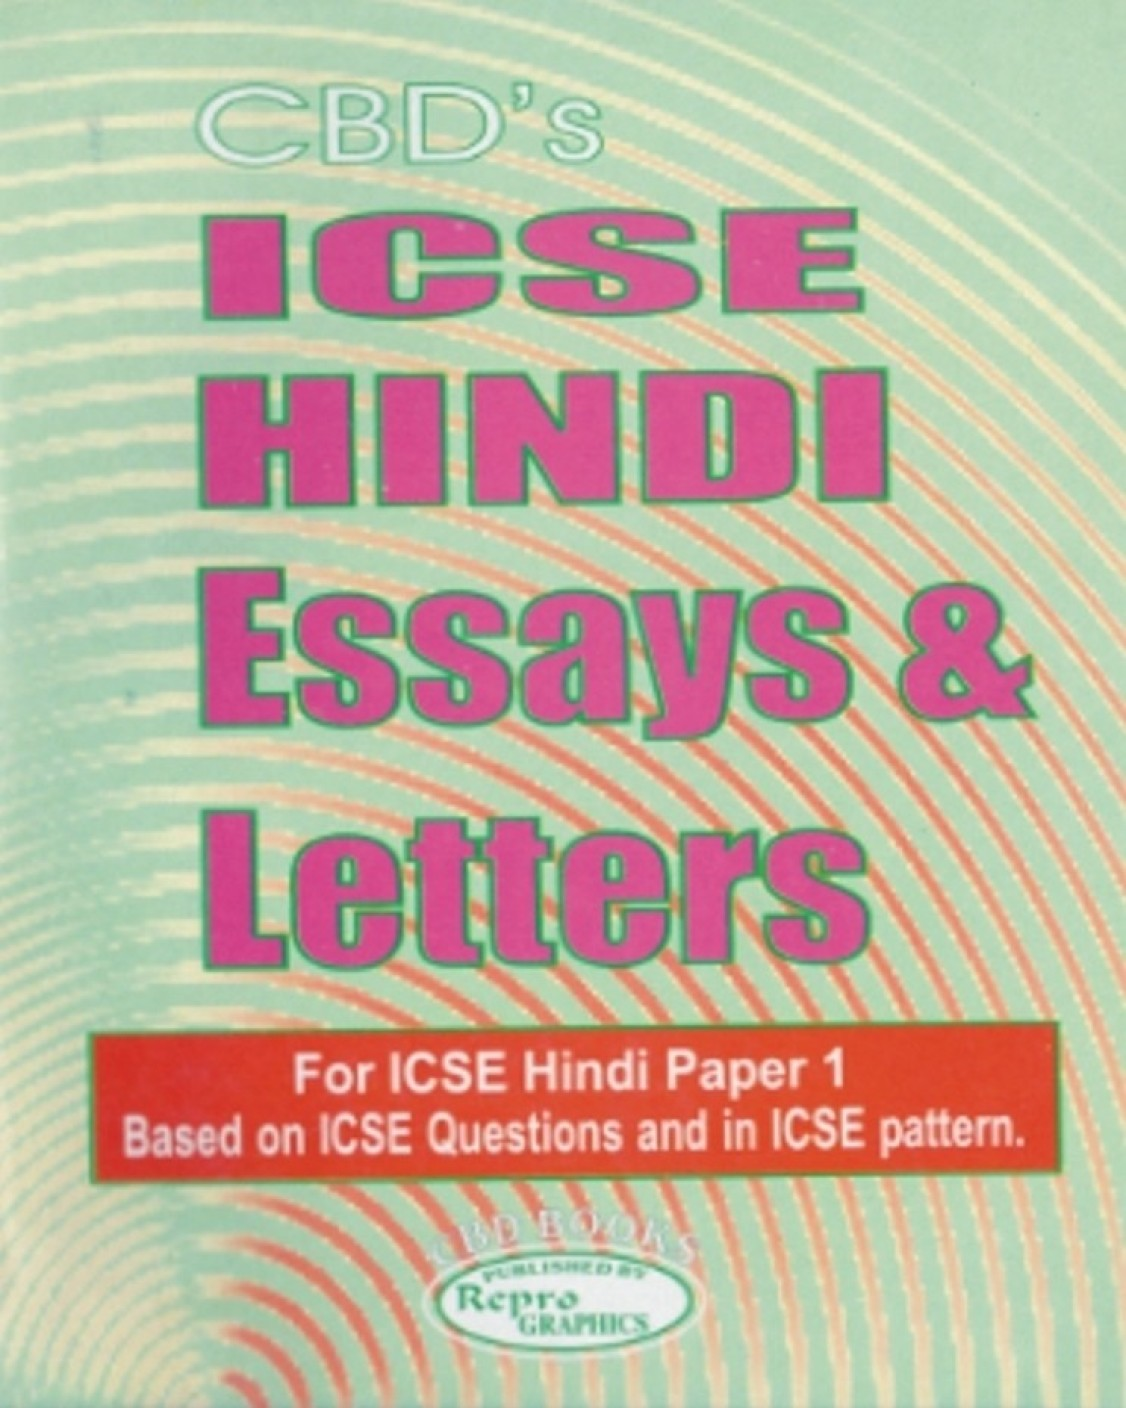 bengali essays for icse Get discount now academic help online - best in california, bengali essay  siteamazonin - buy icse bengali essays & letters (cbd0034 bengali (second  language).